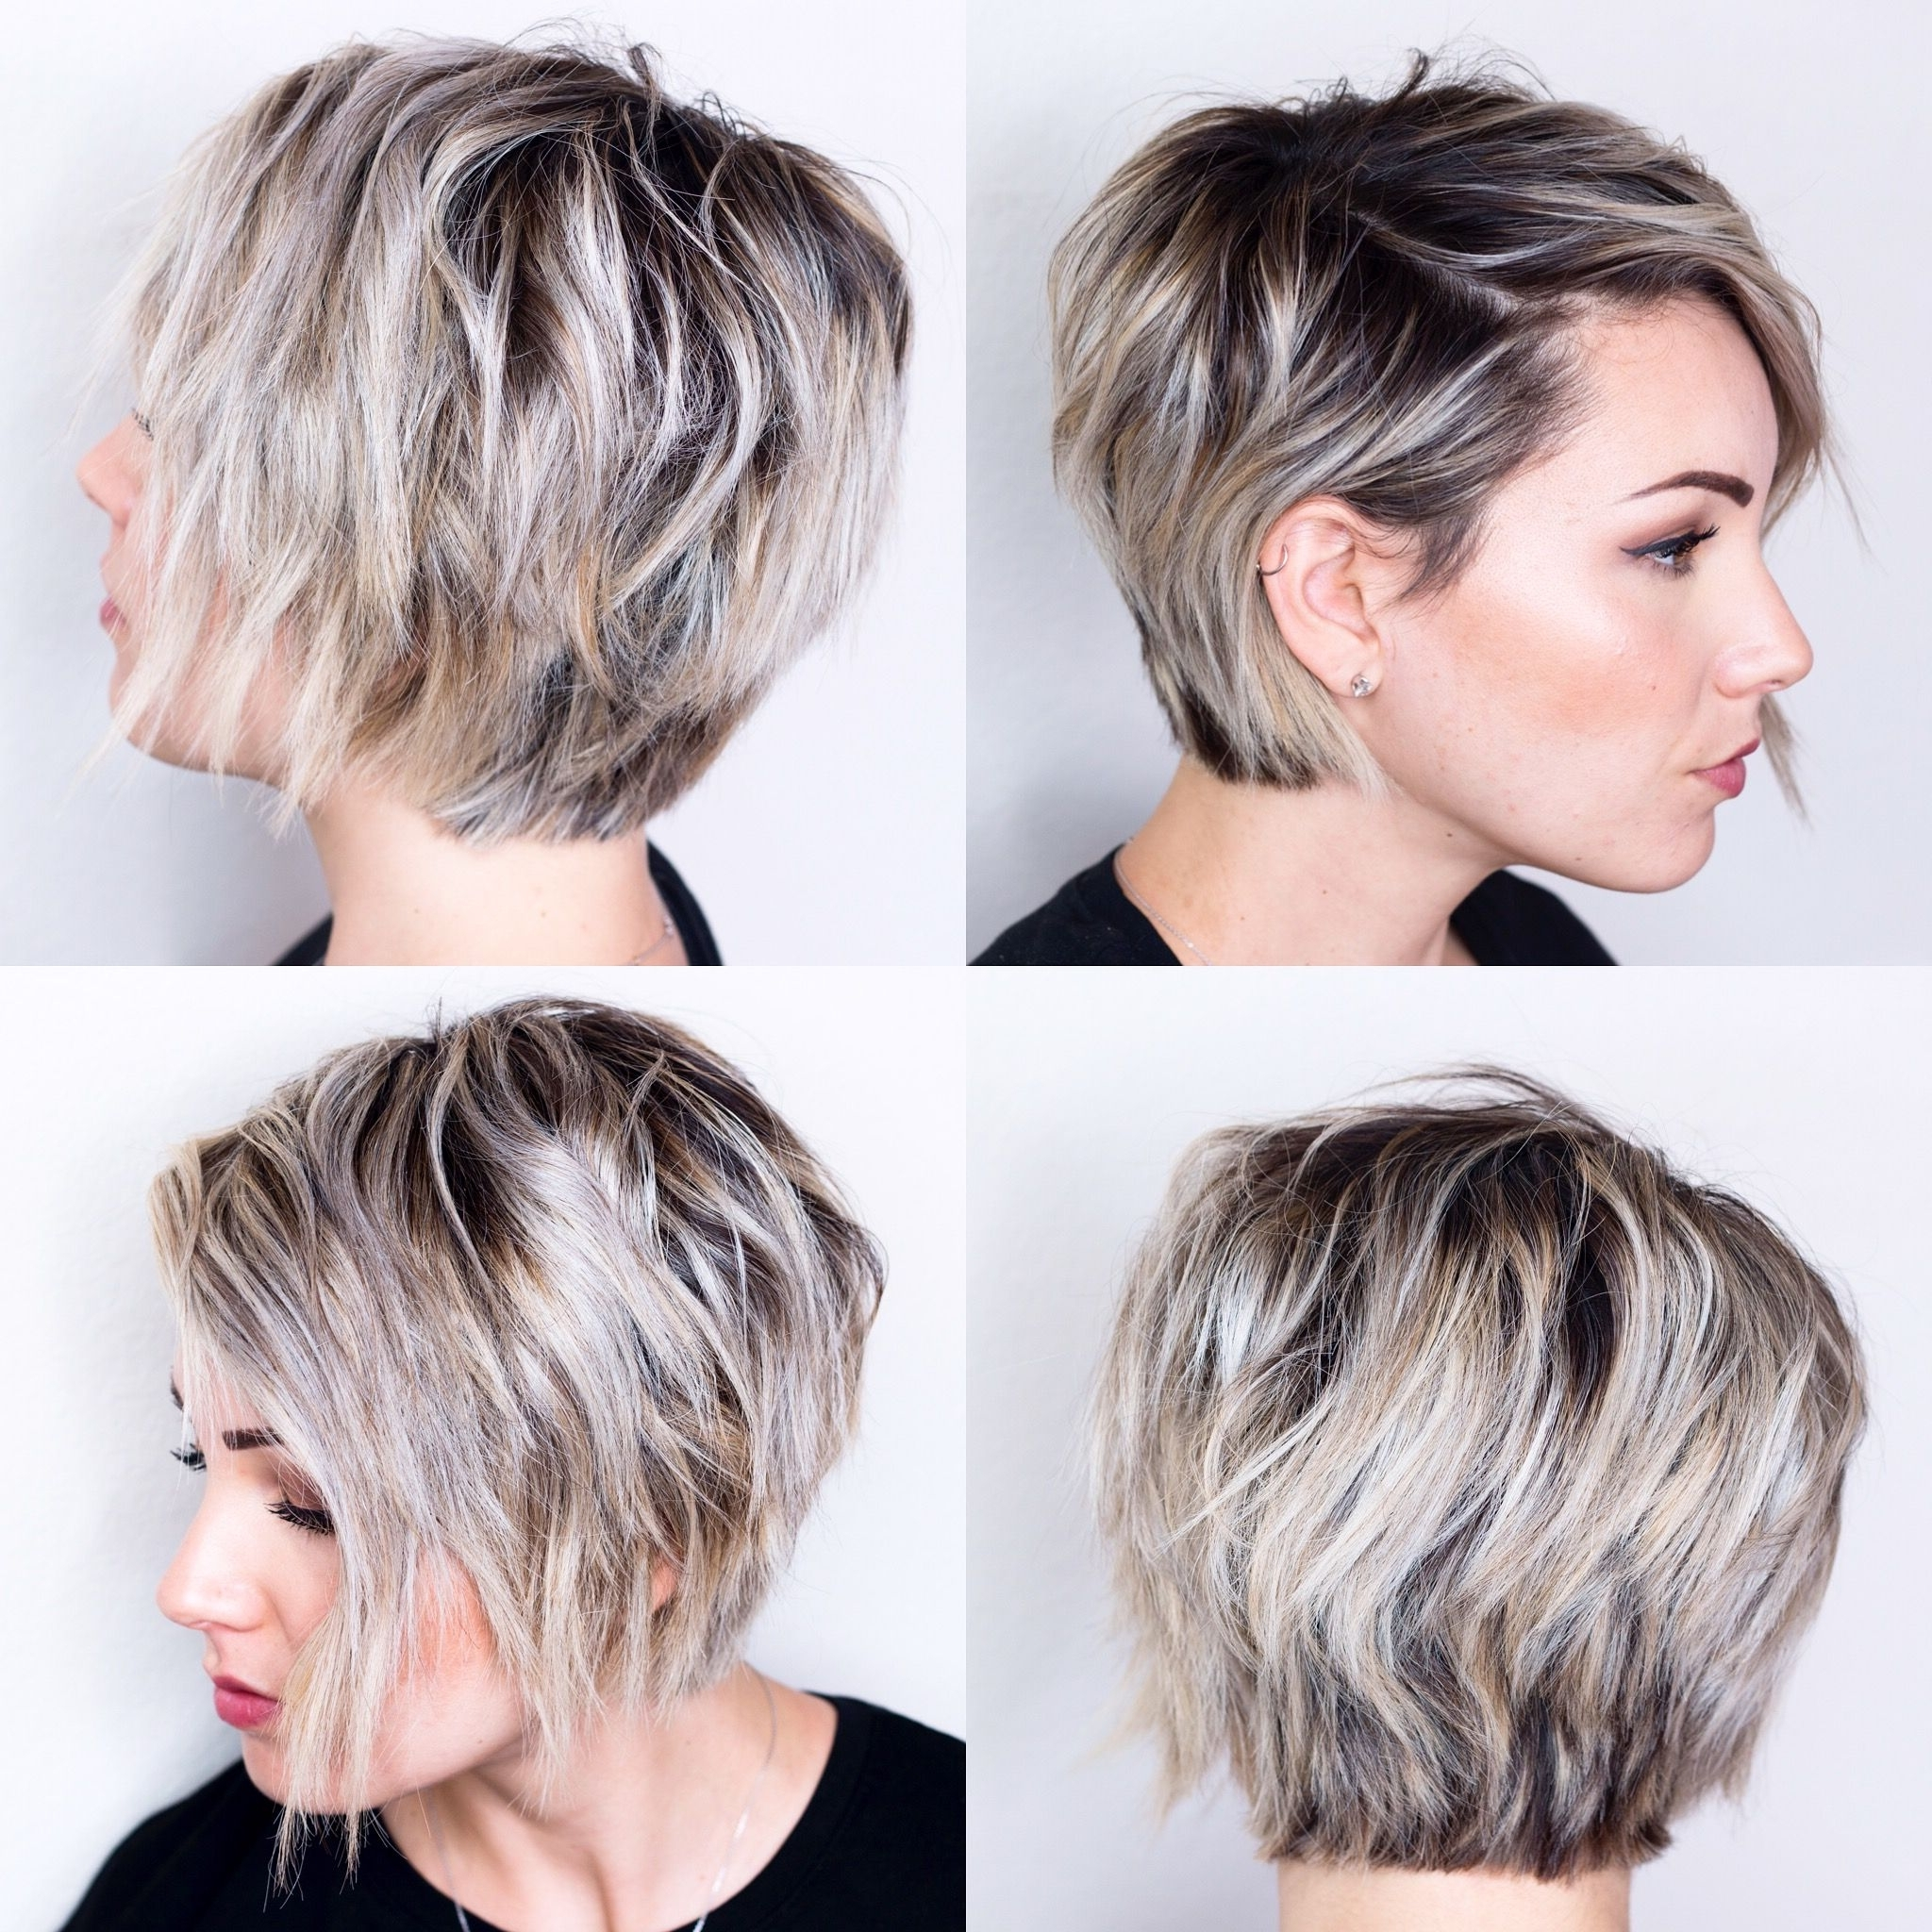 360 View Of Short Hair | H A I R | Pinterest | Short Hair, Shorts With Most Popular Platinum Blonde Disheveled Pixie Haircuts (View 15 of 15)